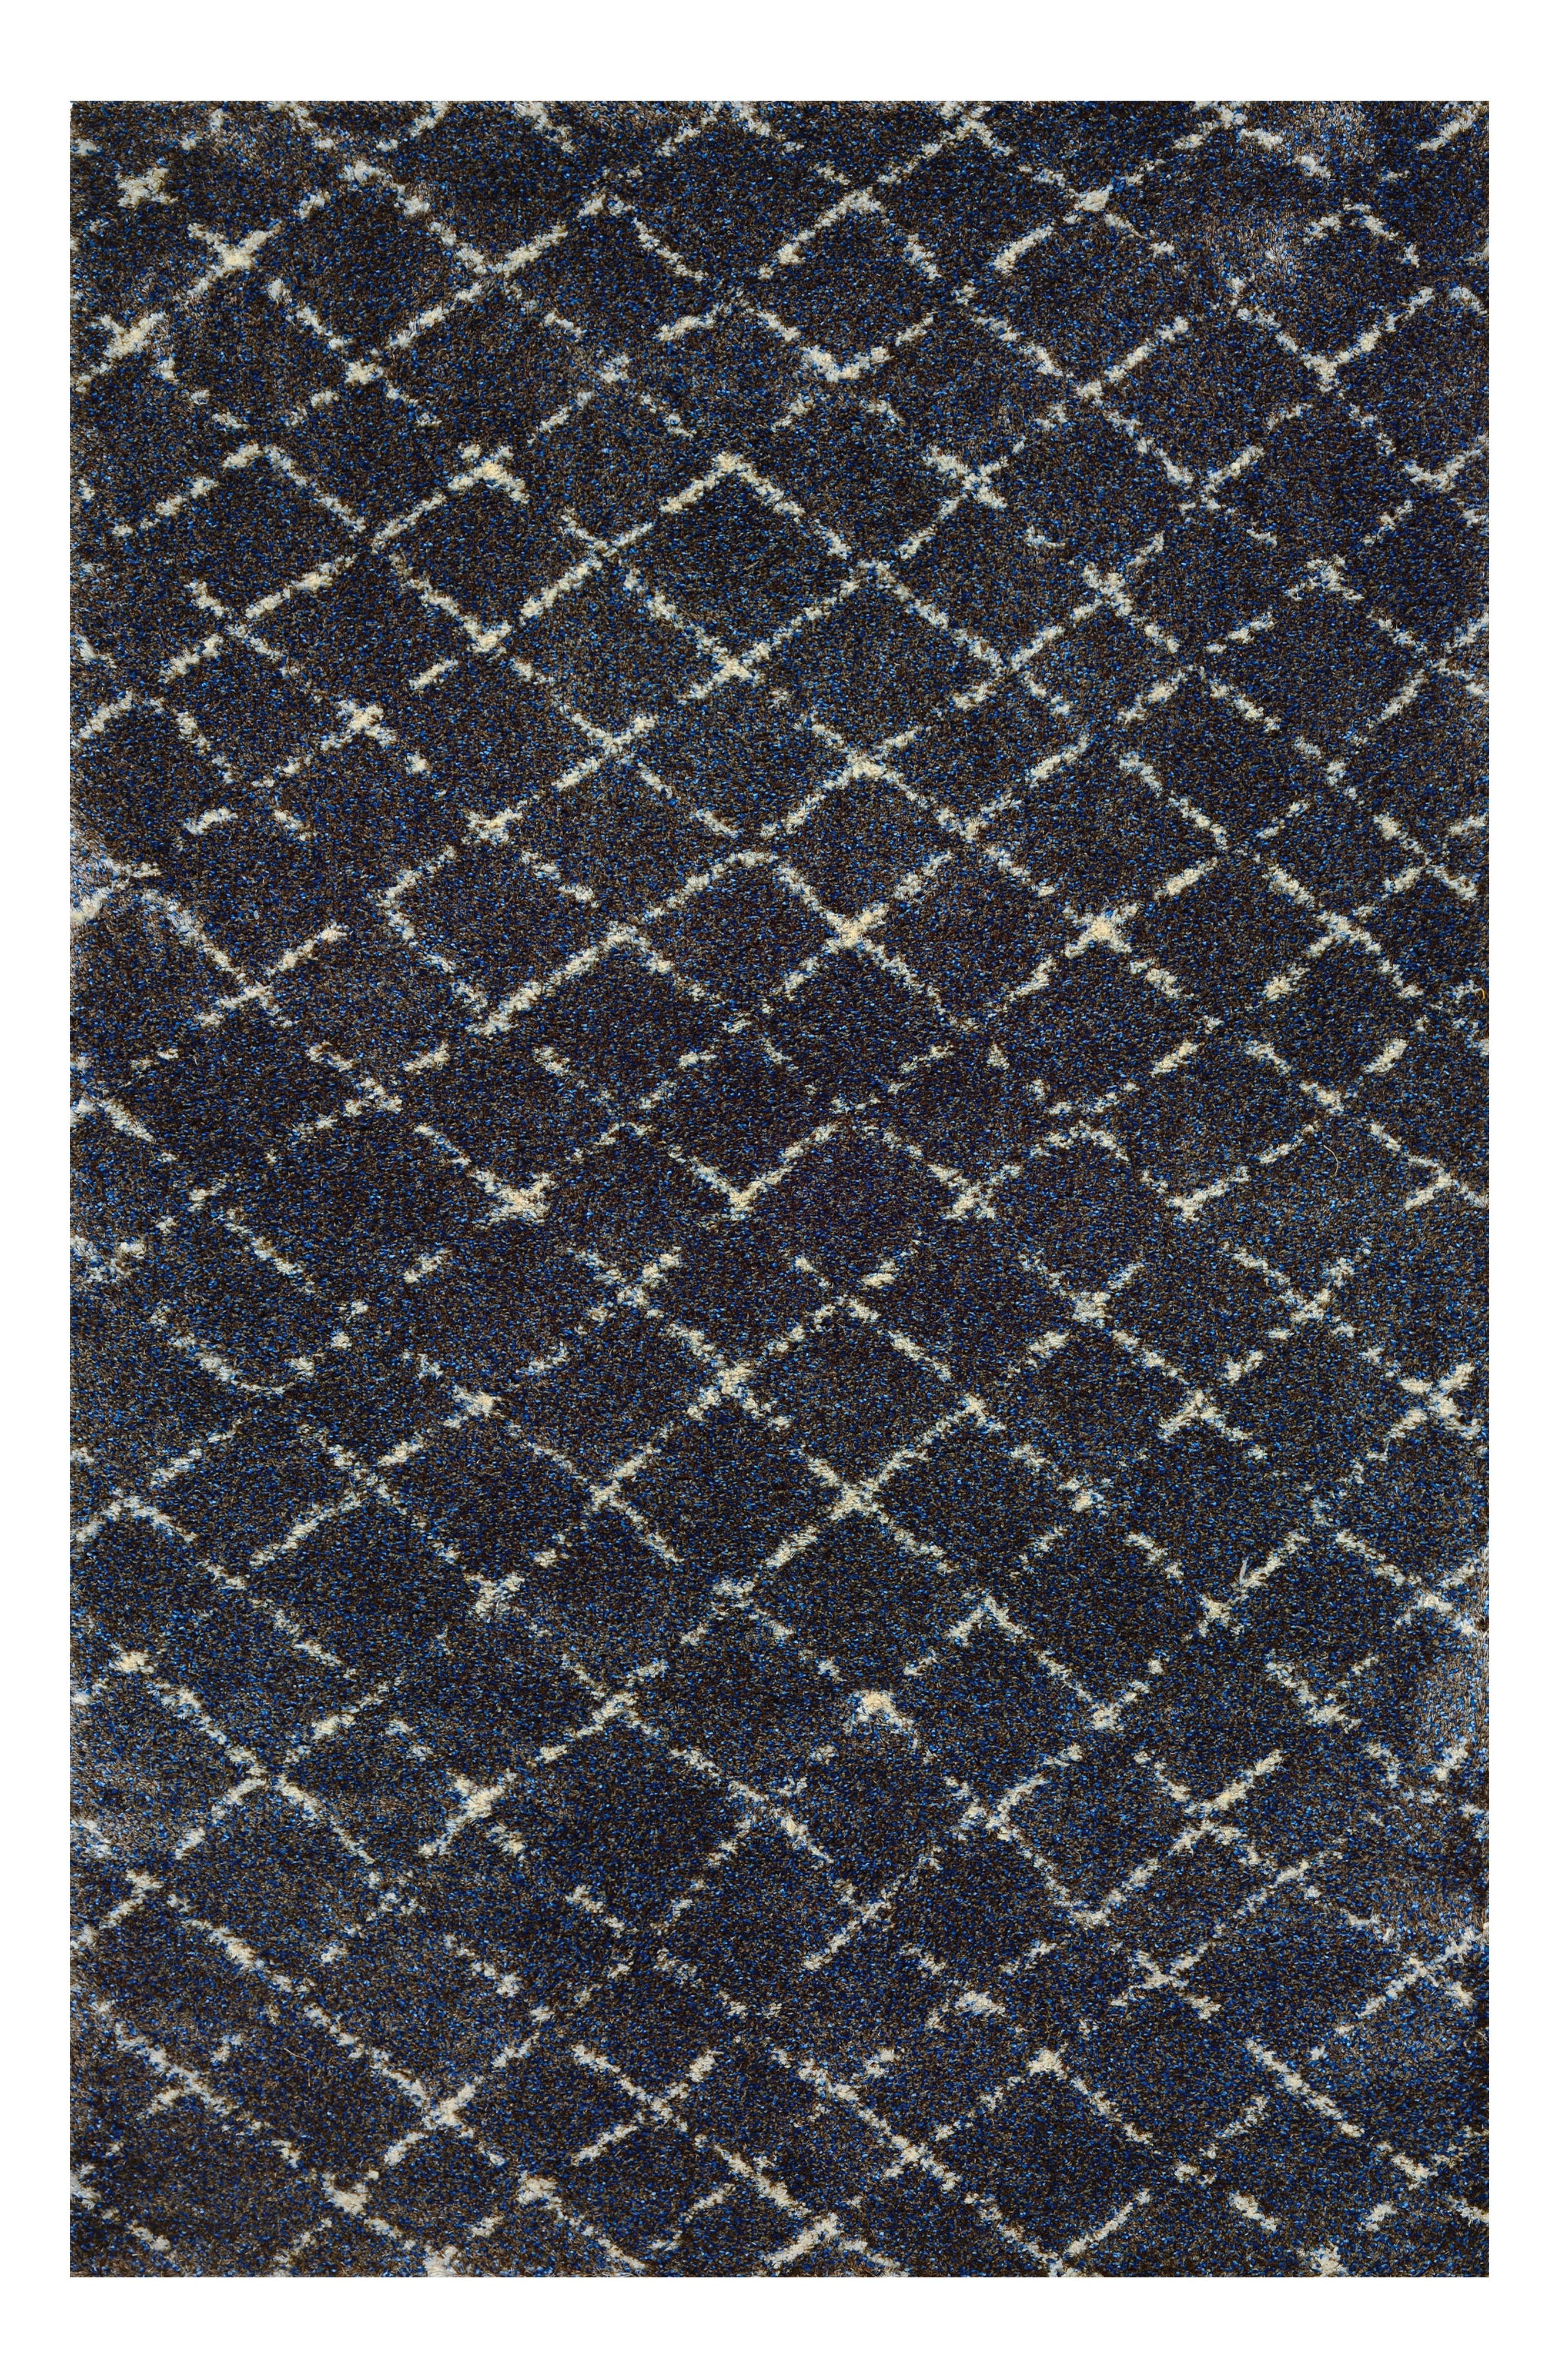 Alternate Image 1 Selected - Couristan Bromley Gio Area Rug